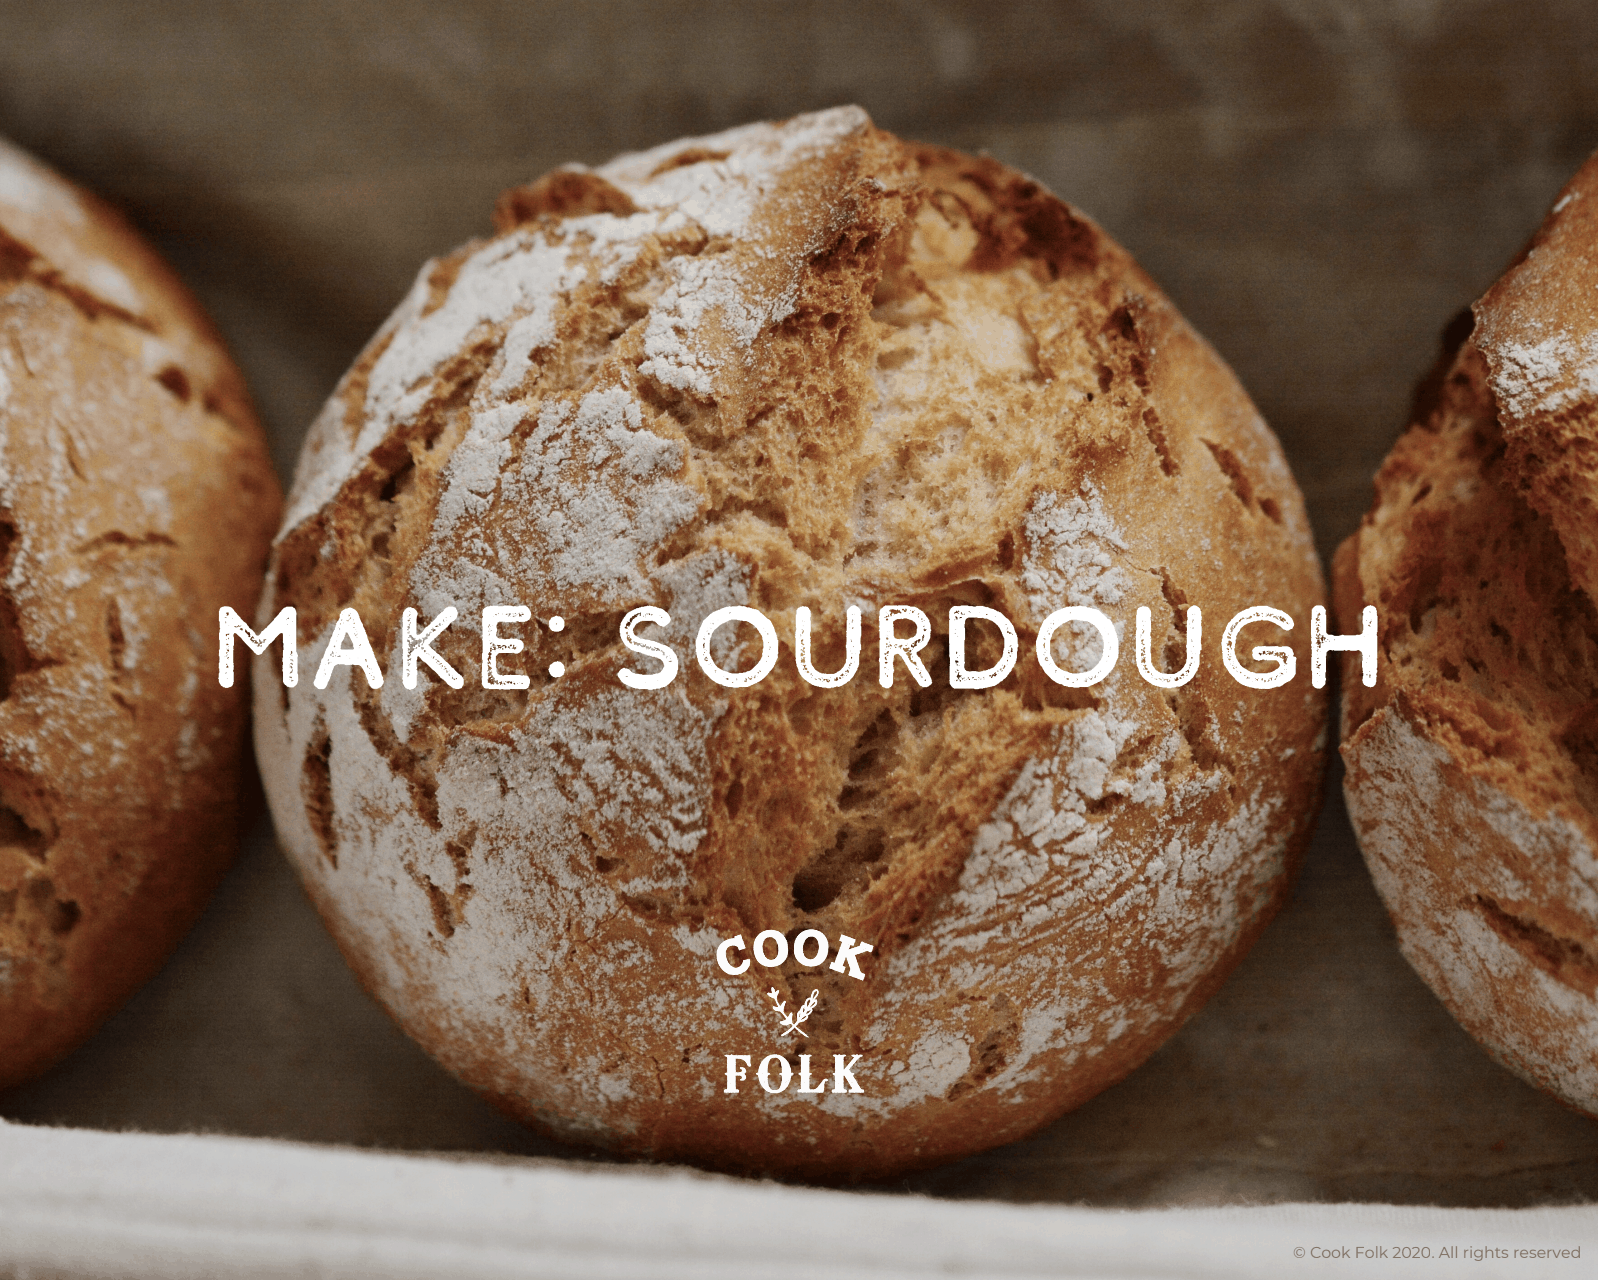 Make Your Own Sourdough with Cook Folk